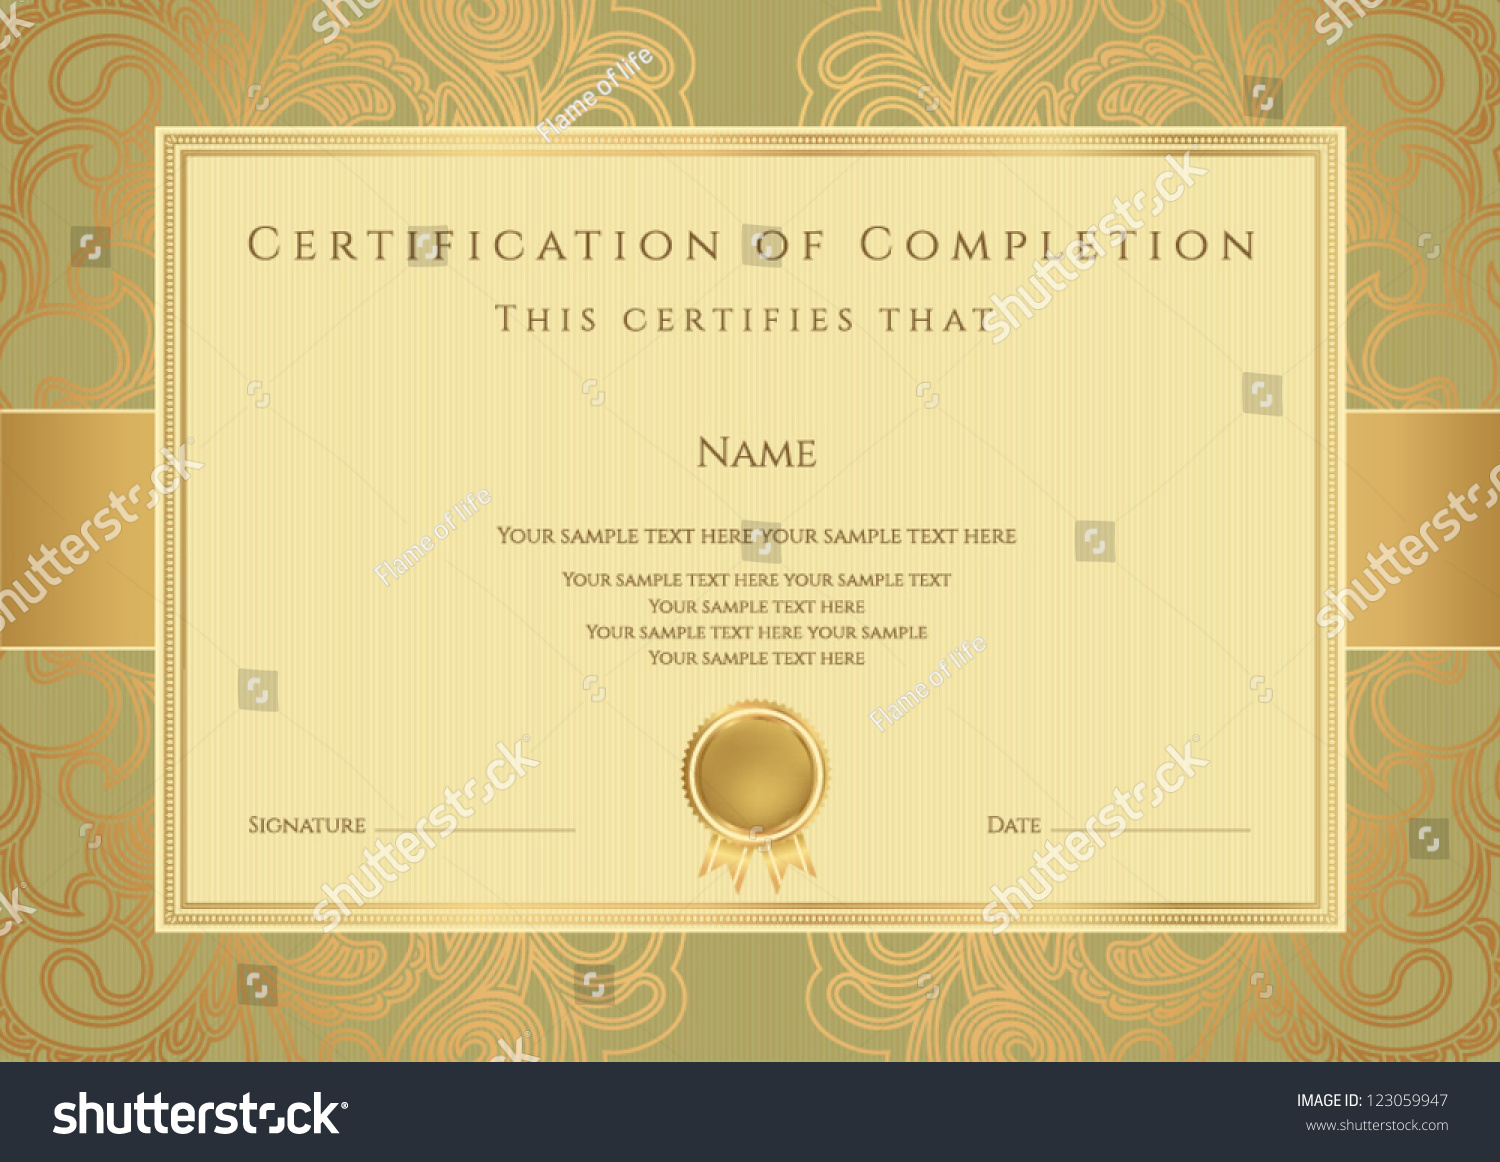 horizontal green certificate of completion template with